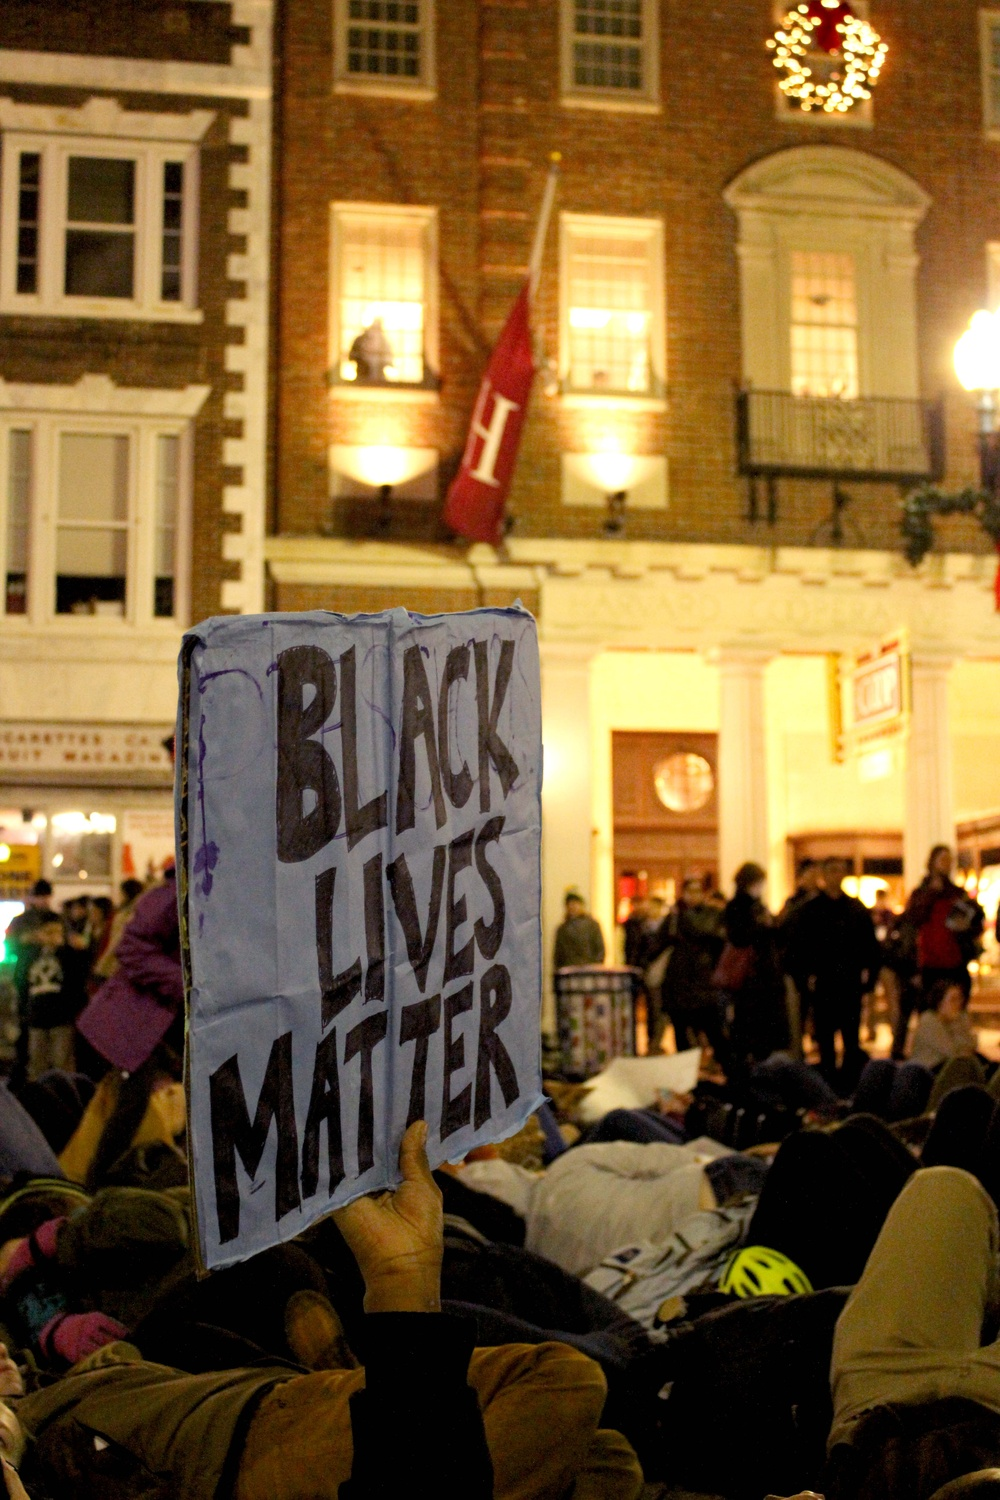 """A protester holds up a sign that reads """"Black Lives Matter"""" during a """"die-in"""" in Harvard Square on Friday evening to protest the recent non-indictments of the officers in the Michael Brown and Eric Garner cases. Protesters began in Davis Square and continued to MIT, laying down at key transportation sites."""